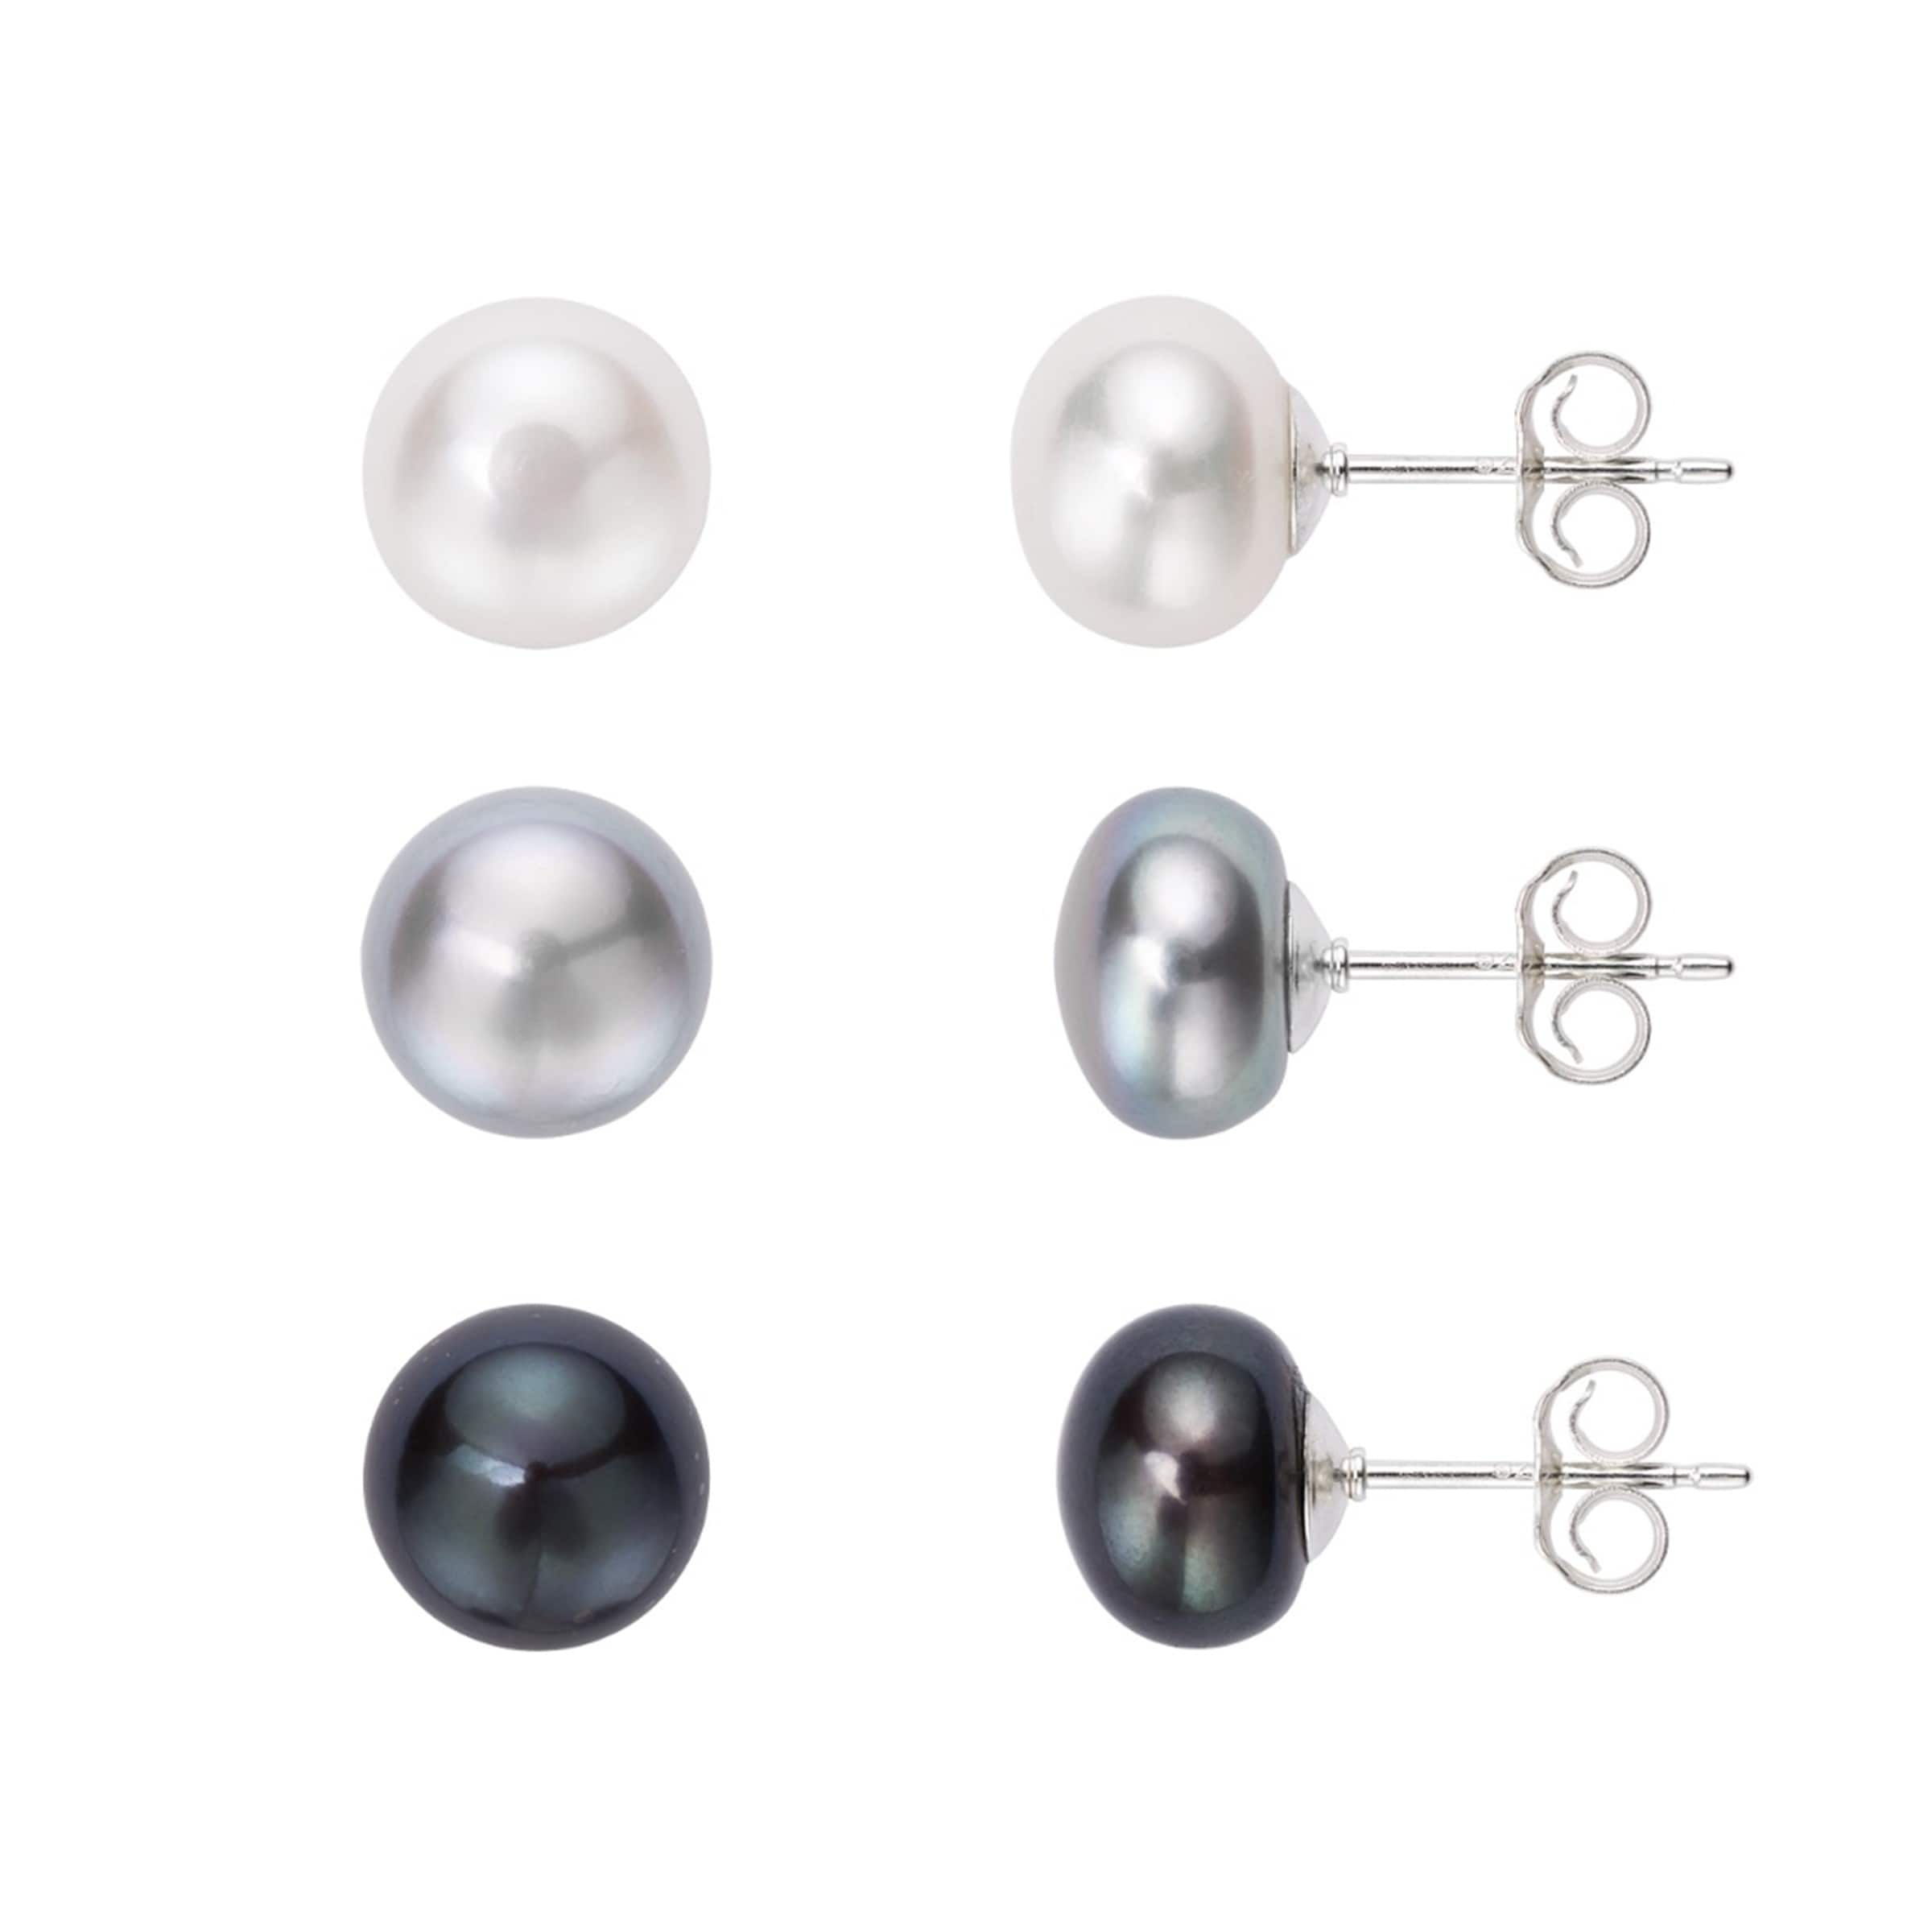 23d88e7d7 Shop Pearlyta Sterling Silver 925 Set of 3 Pairs of Freshwater Pearl Button  Stud Earrings - White/Grey/Black (8-9mm) - On Sale - Free Shipping On  Orders ...